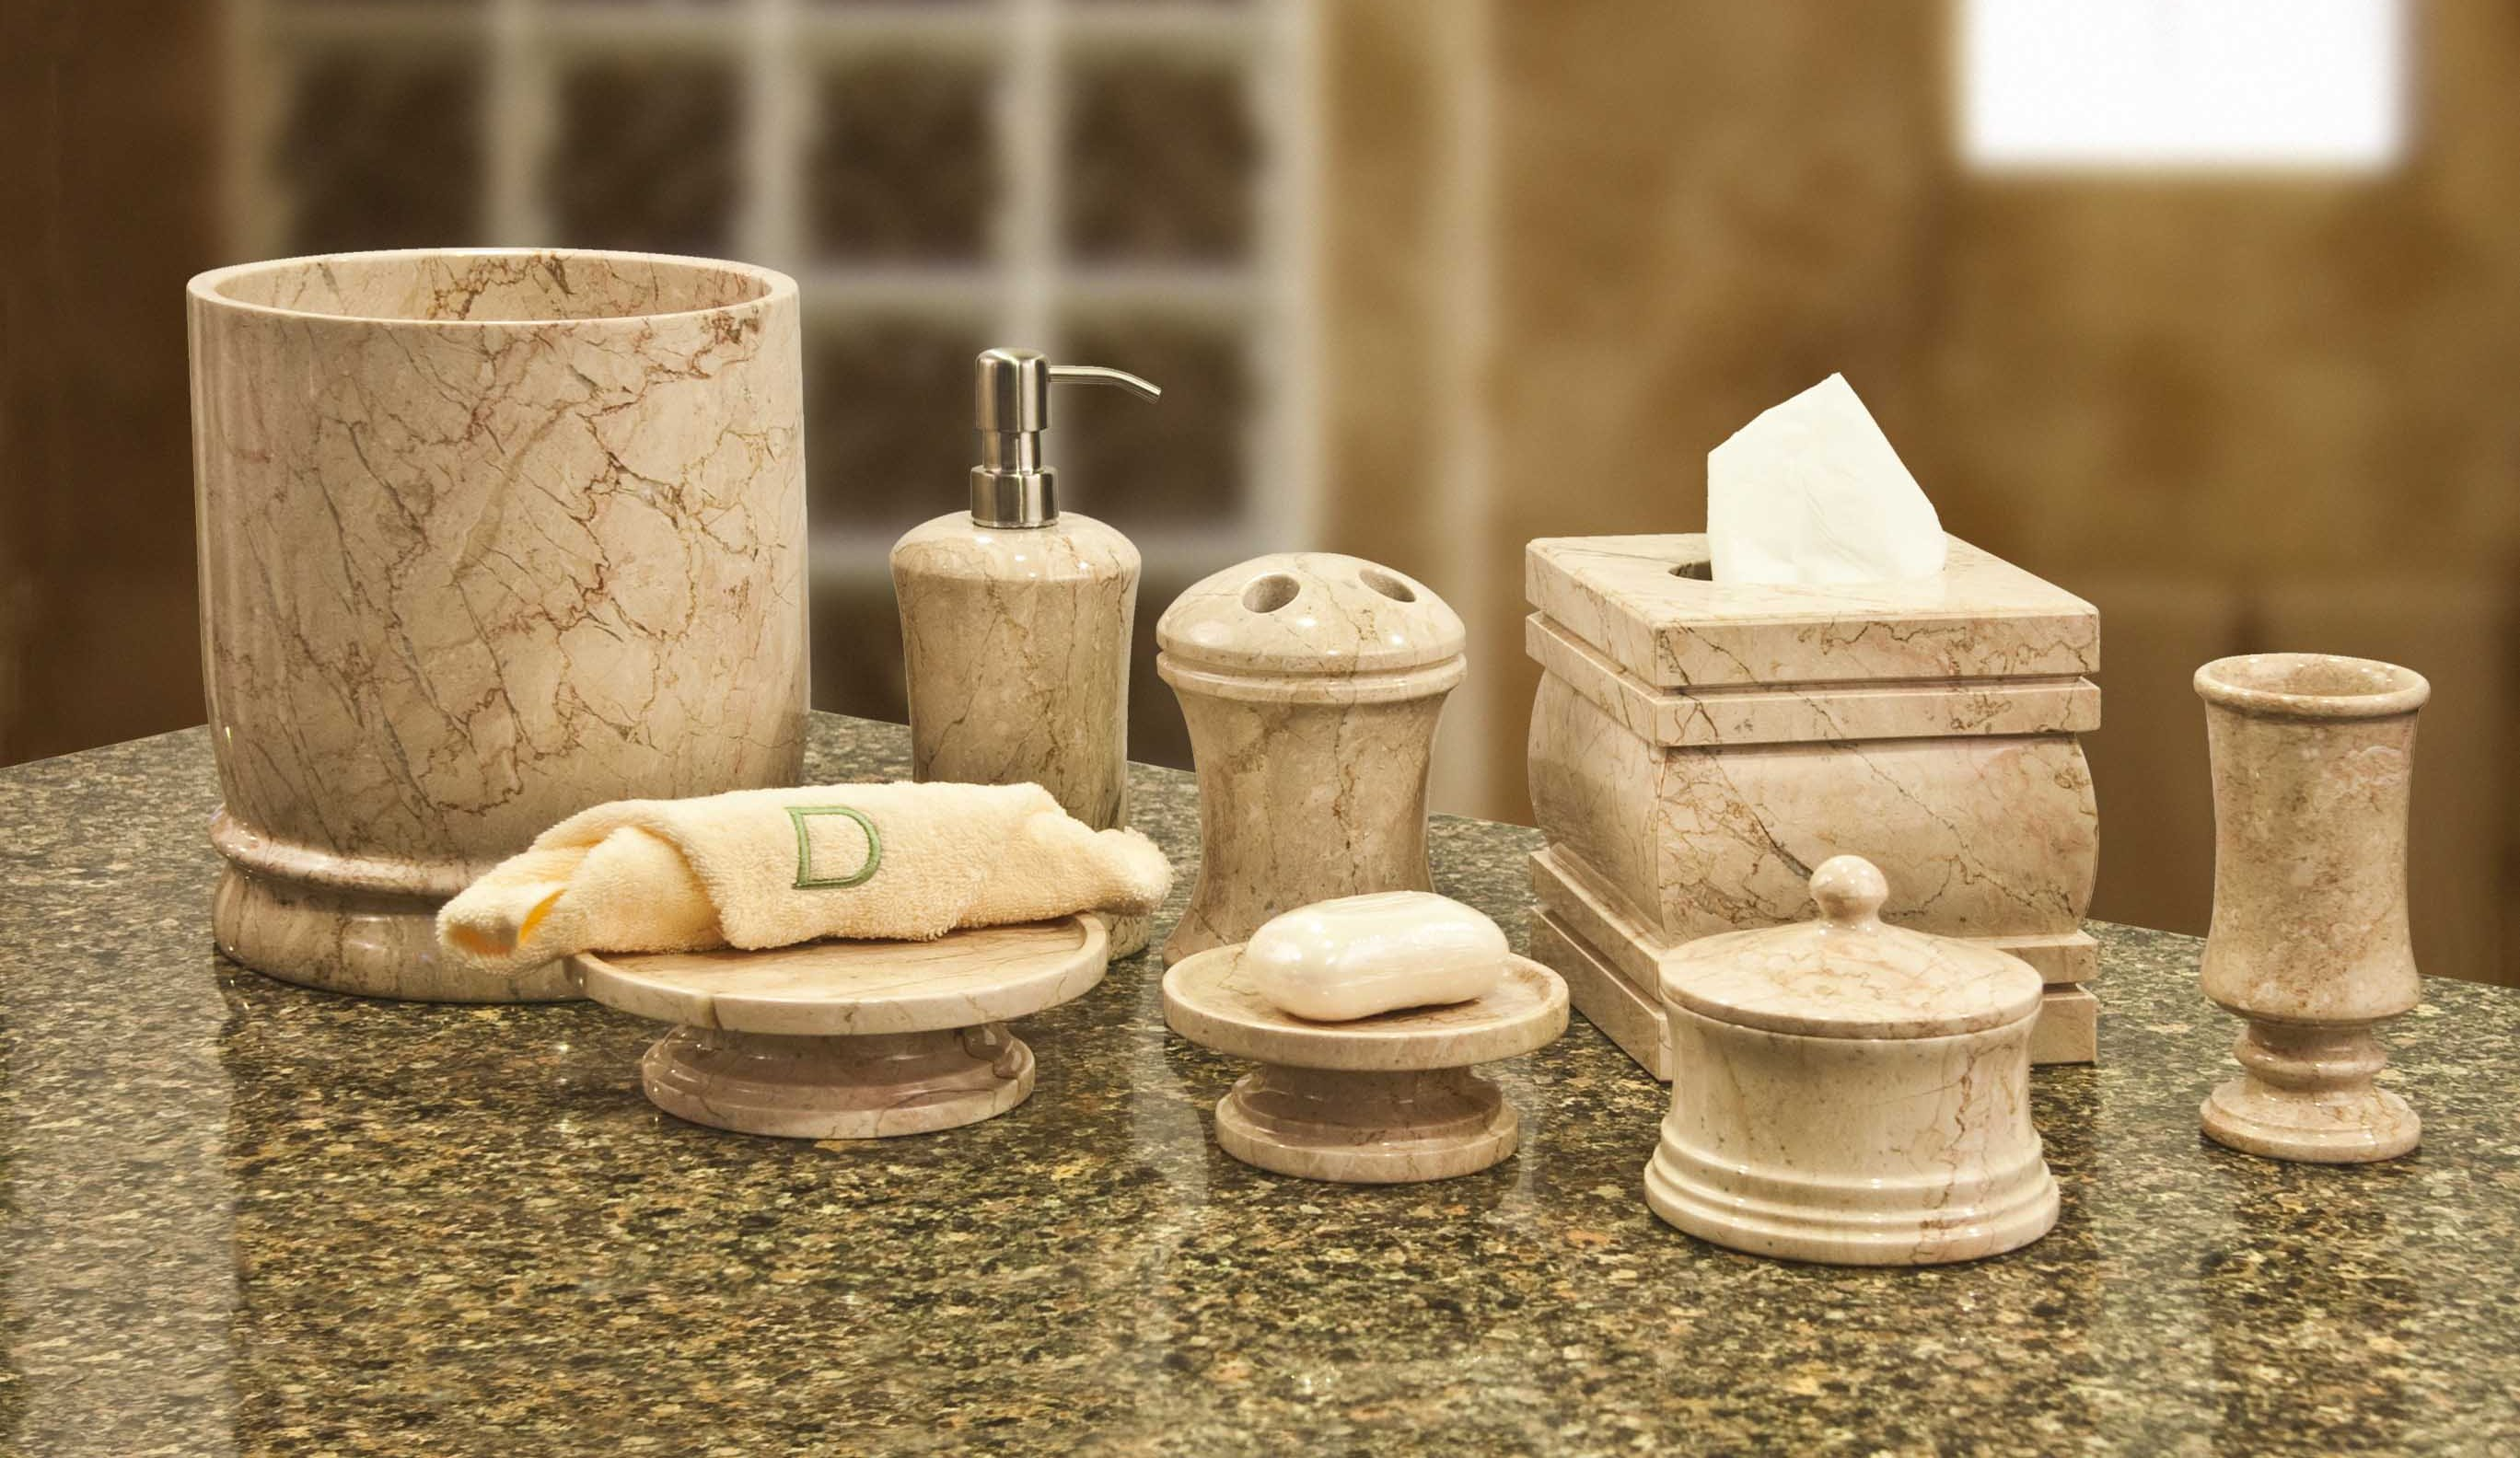 Hard Goods Bath Sets Buying Agency in India